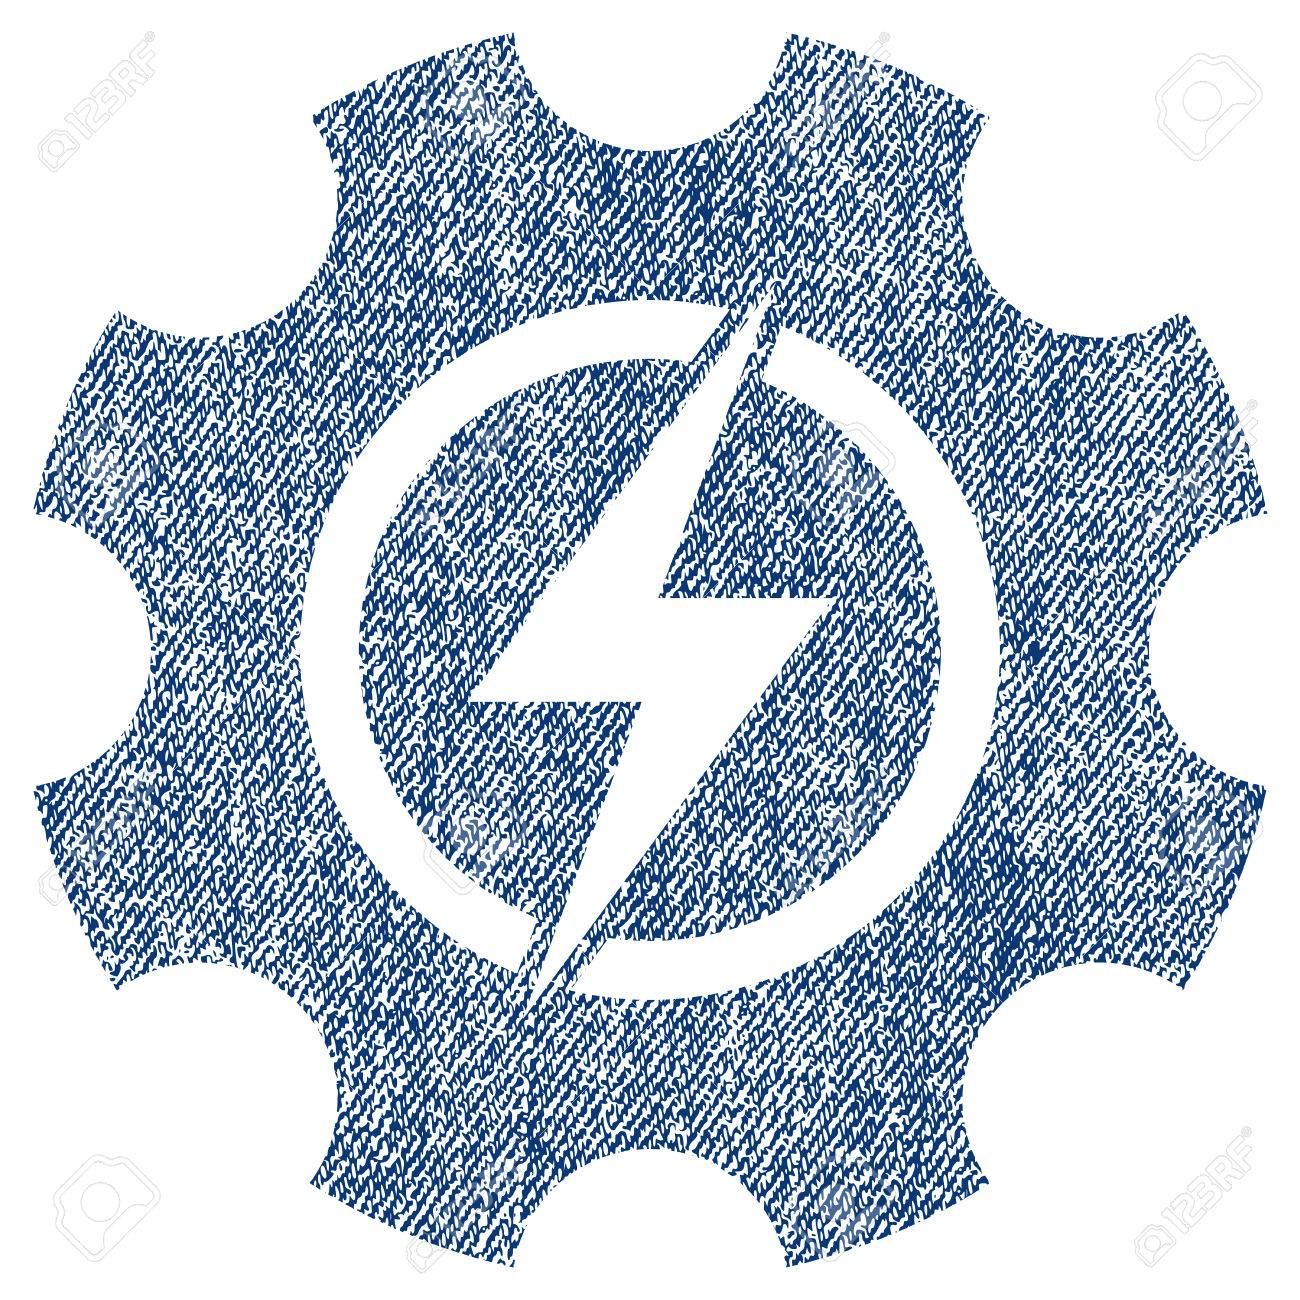 Electric power cog gear raster textured icon for overlay watermark electric power cog gear raster textured icon for overlay watermark stamps blue jeans fabric rasterized biocorpaavc